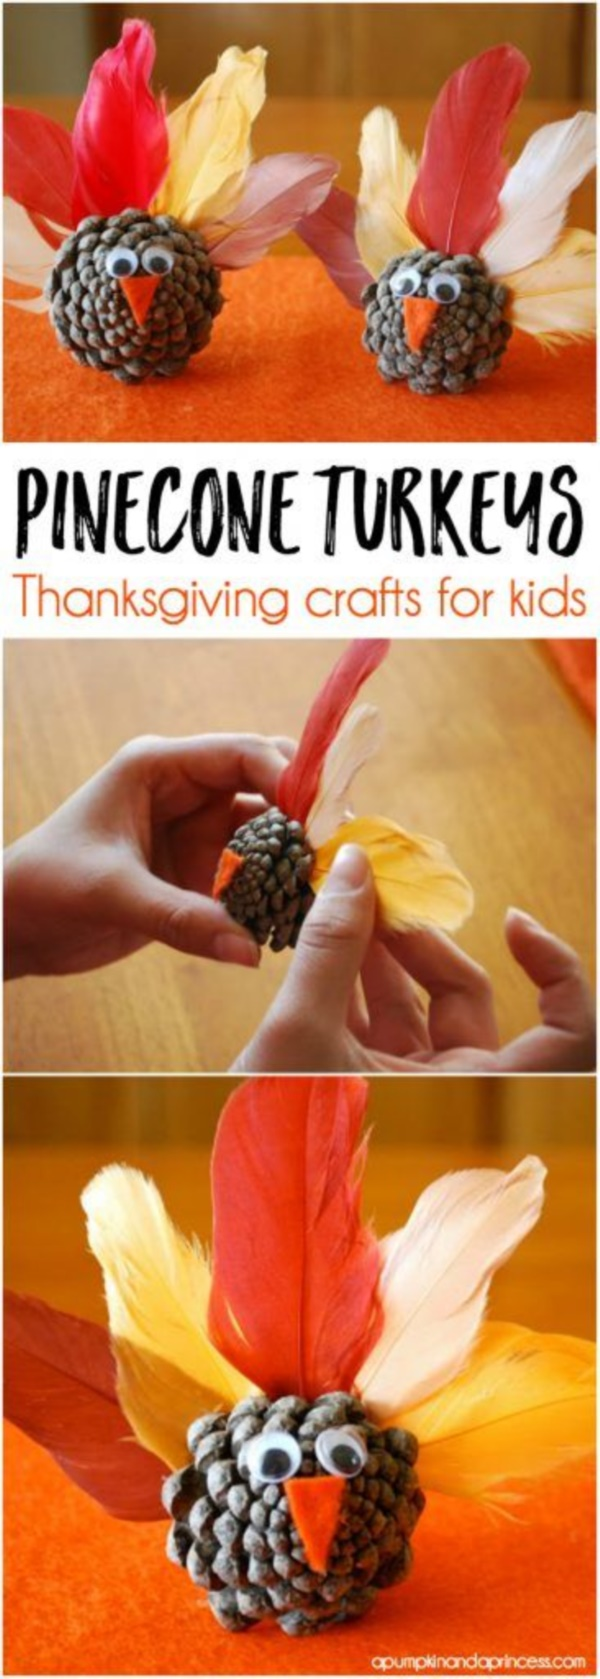 thanksgiving craft gift ideas 45 easy thanksgiving crafts ideas to gift someone special 5553